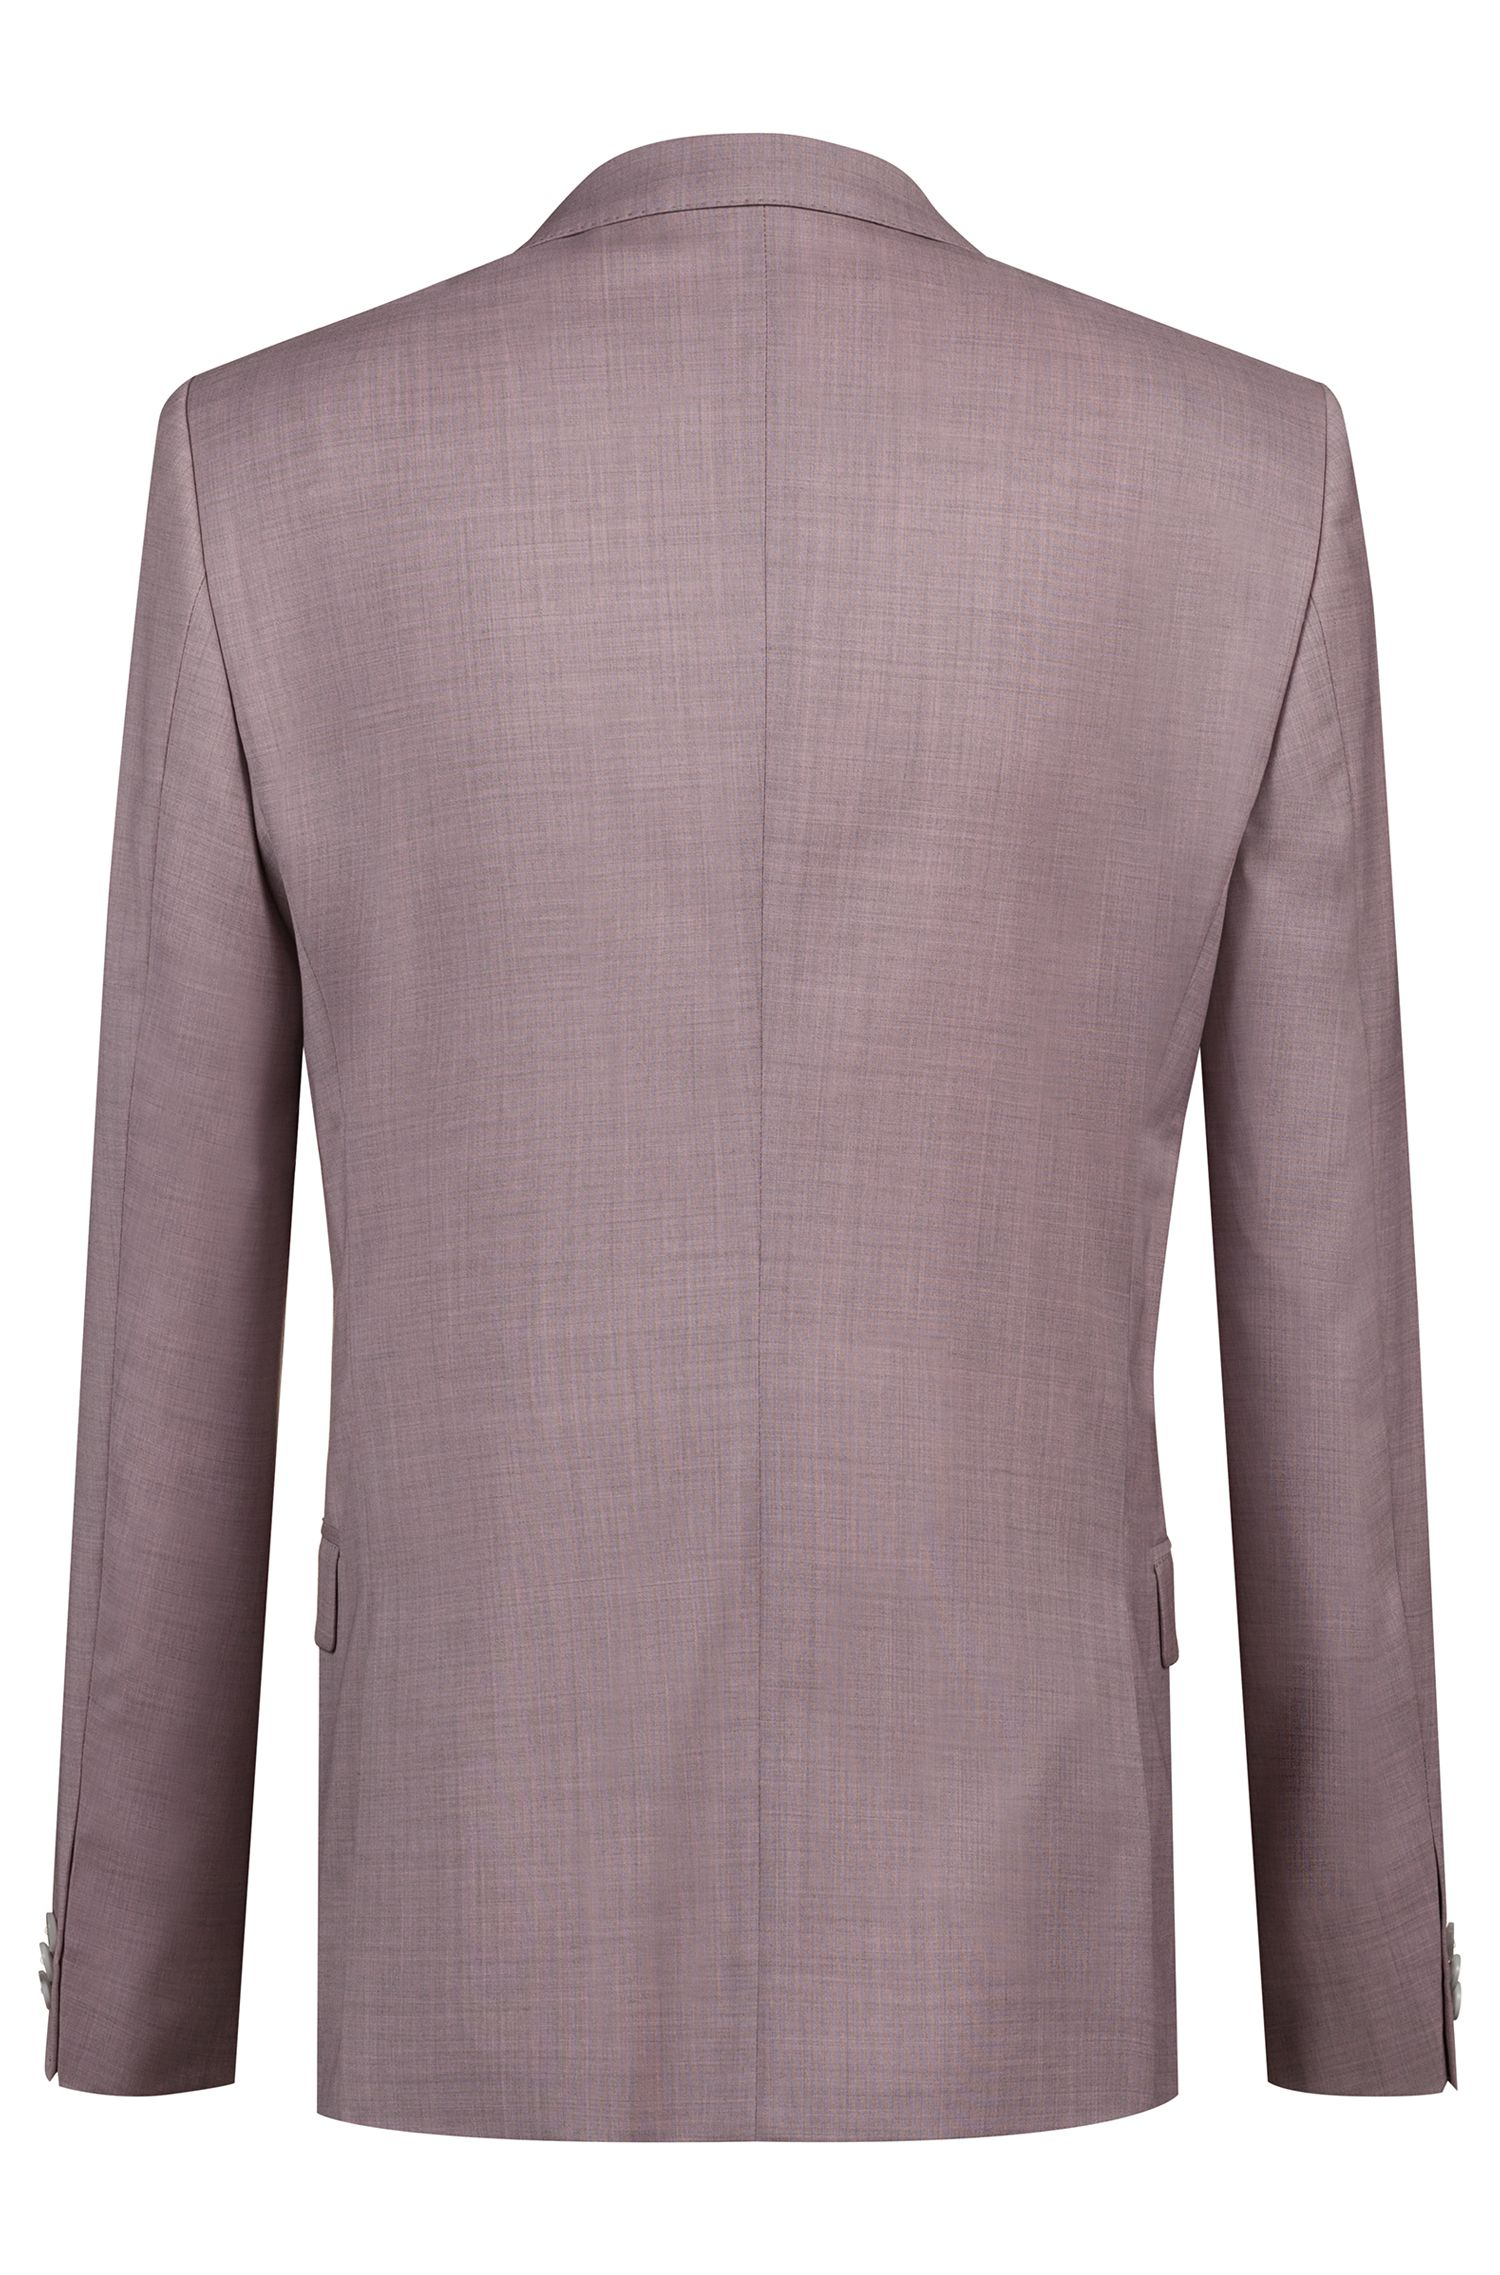 Extra-slim-fit virgin-wool suit with overdyed effect, light pink